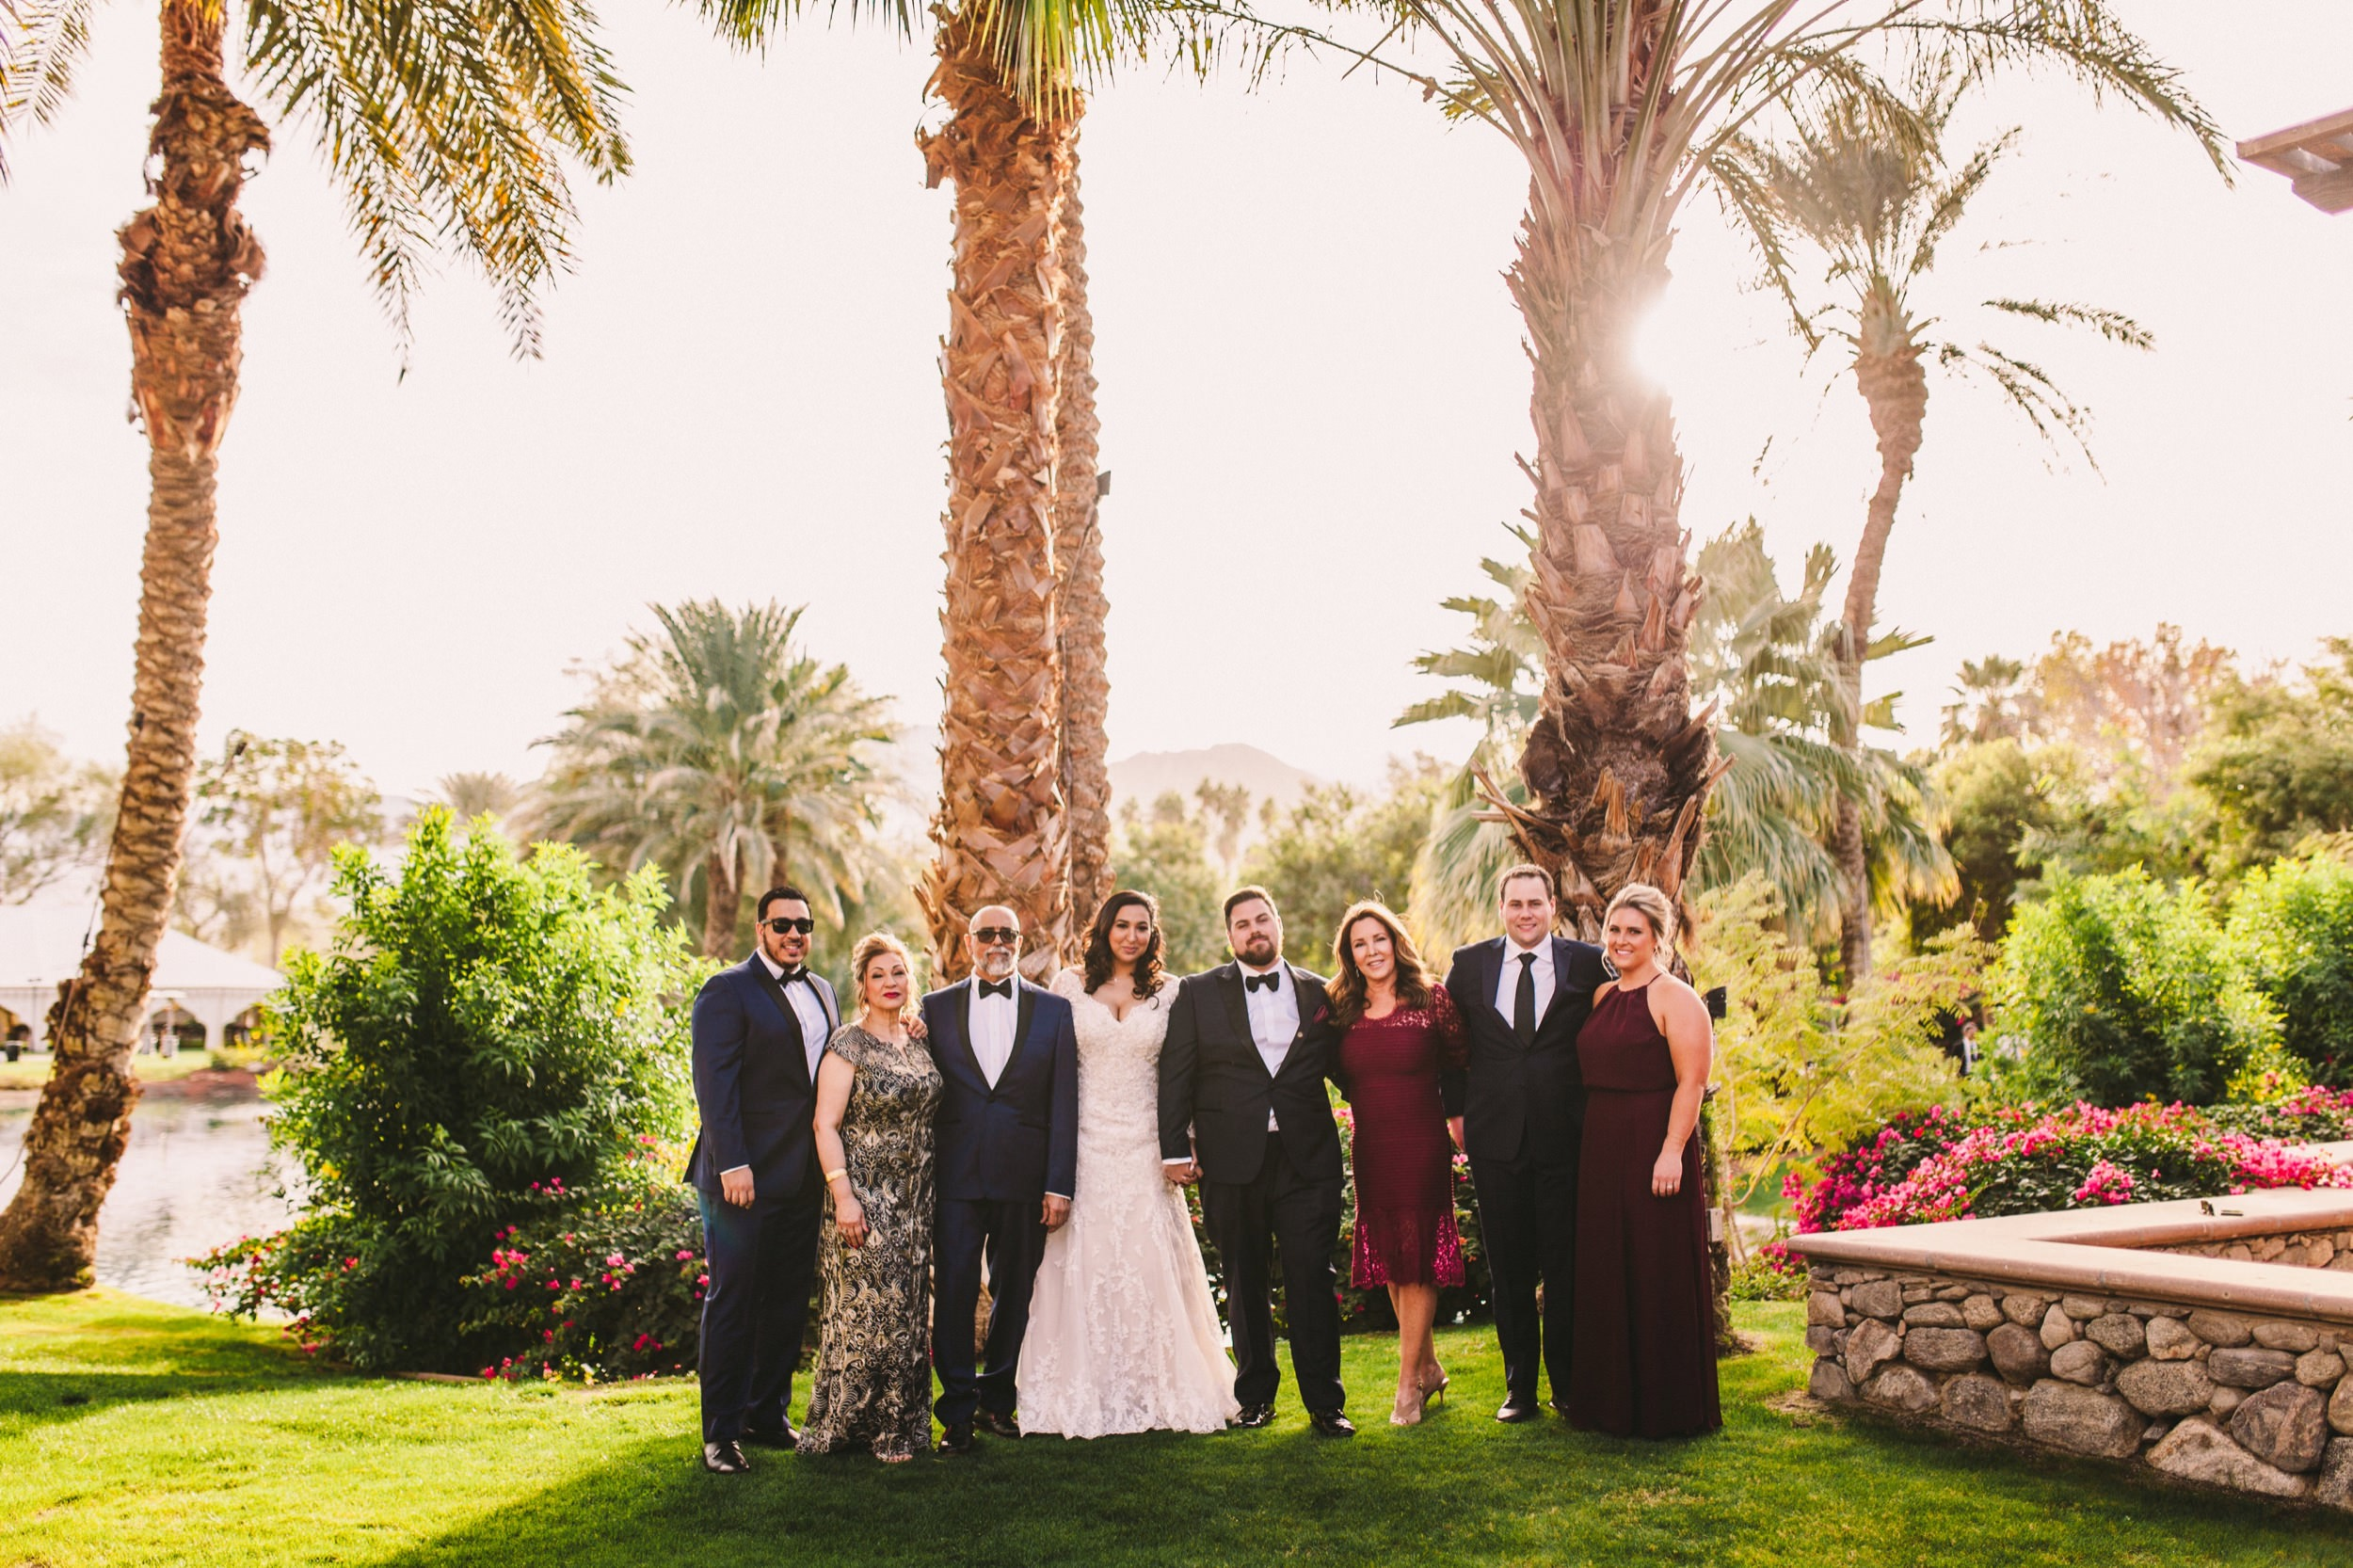 Coachella Valley Indio Persian Wedding Photography-47.jpg